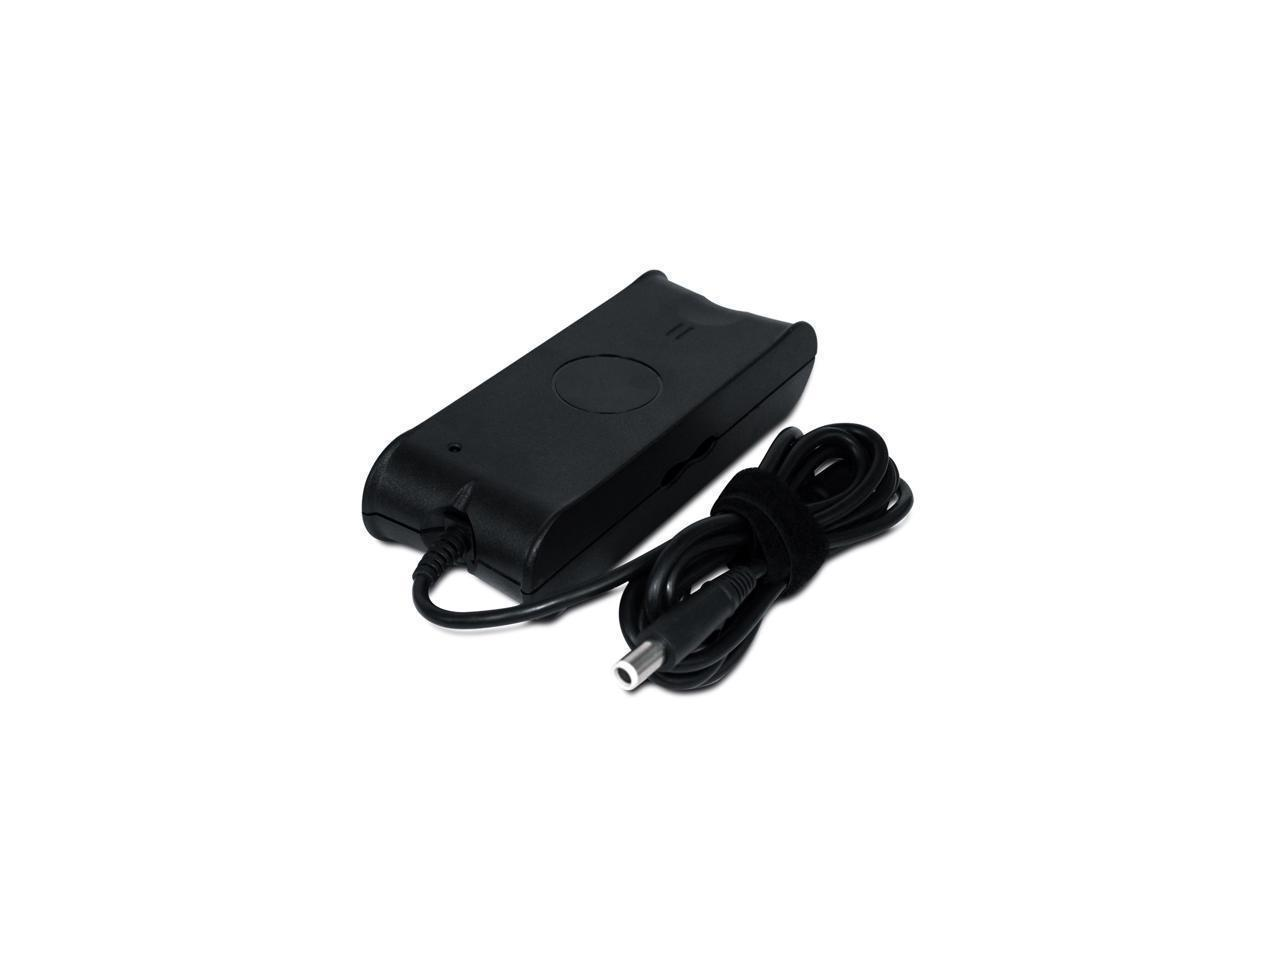 New 65W AC Adapter Charger for Dell Inspiron 1400 1401 M5040 N301z N5040 N5050